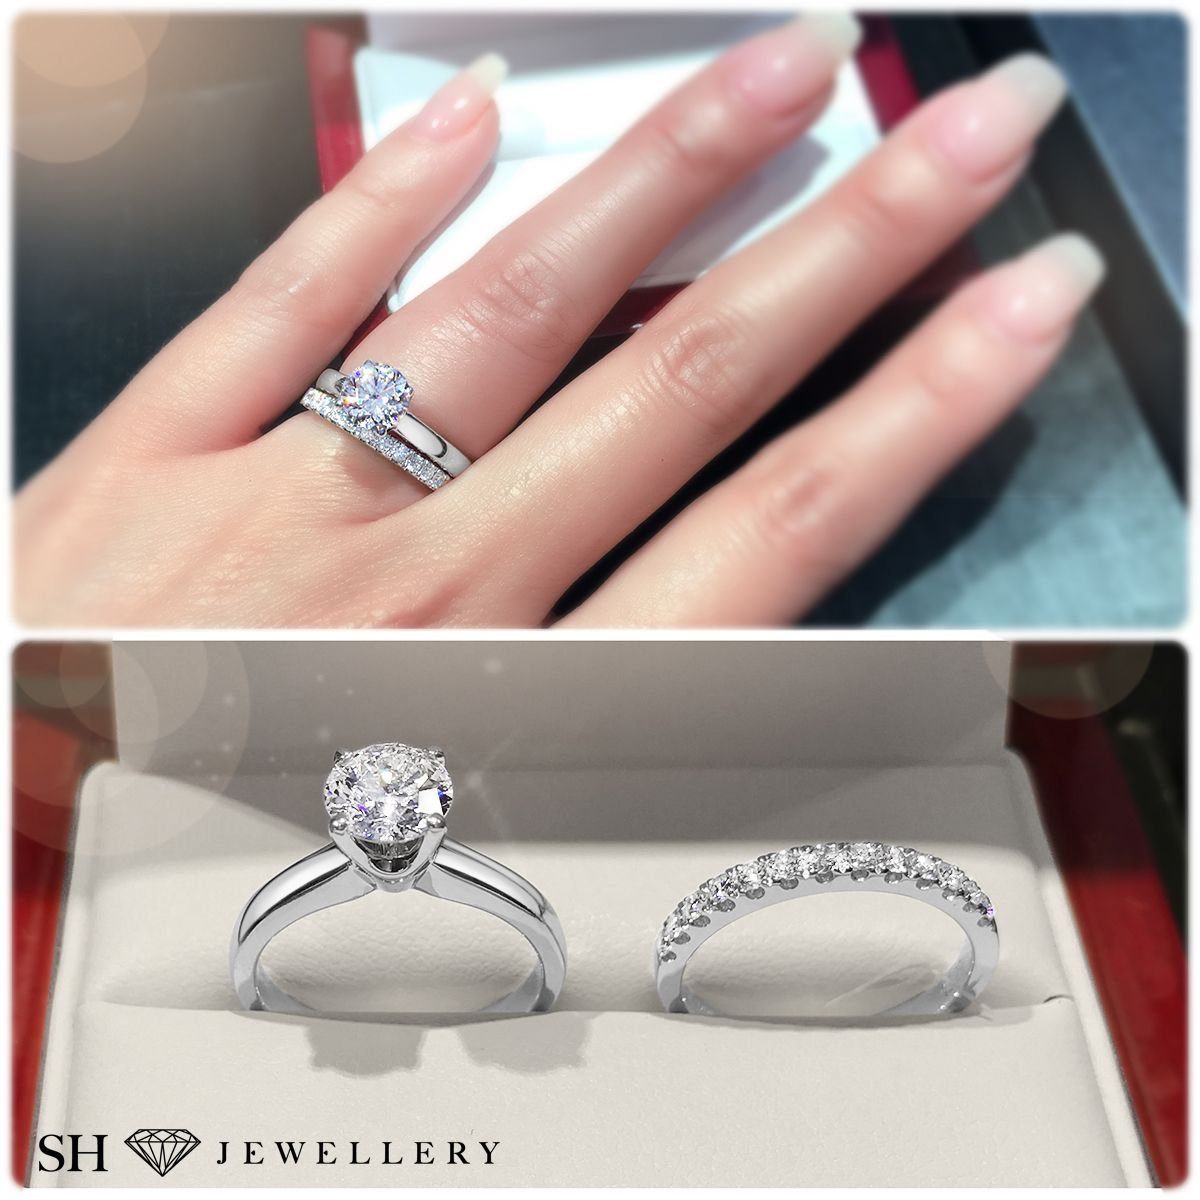 Classic 4 Claw Solitaire Engagement Ring W0005 Womens Wedding Bands Diamond Diamond Engagement Wedding Ring Engagement Wedding Ring Sets